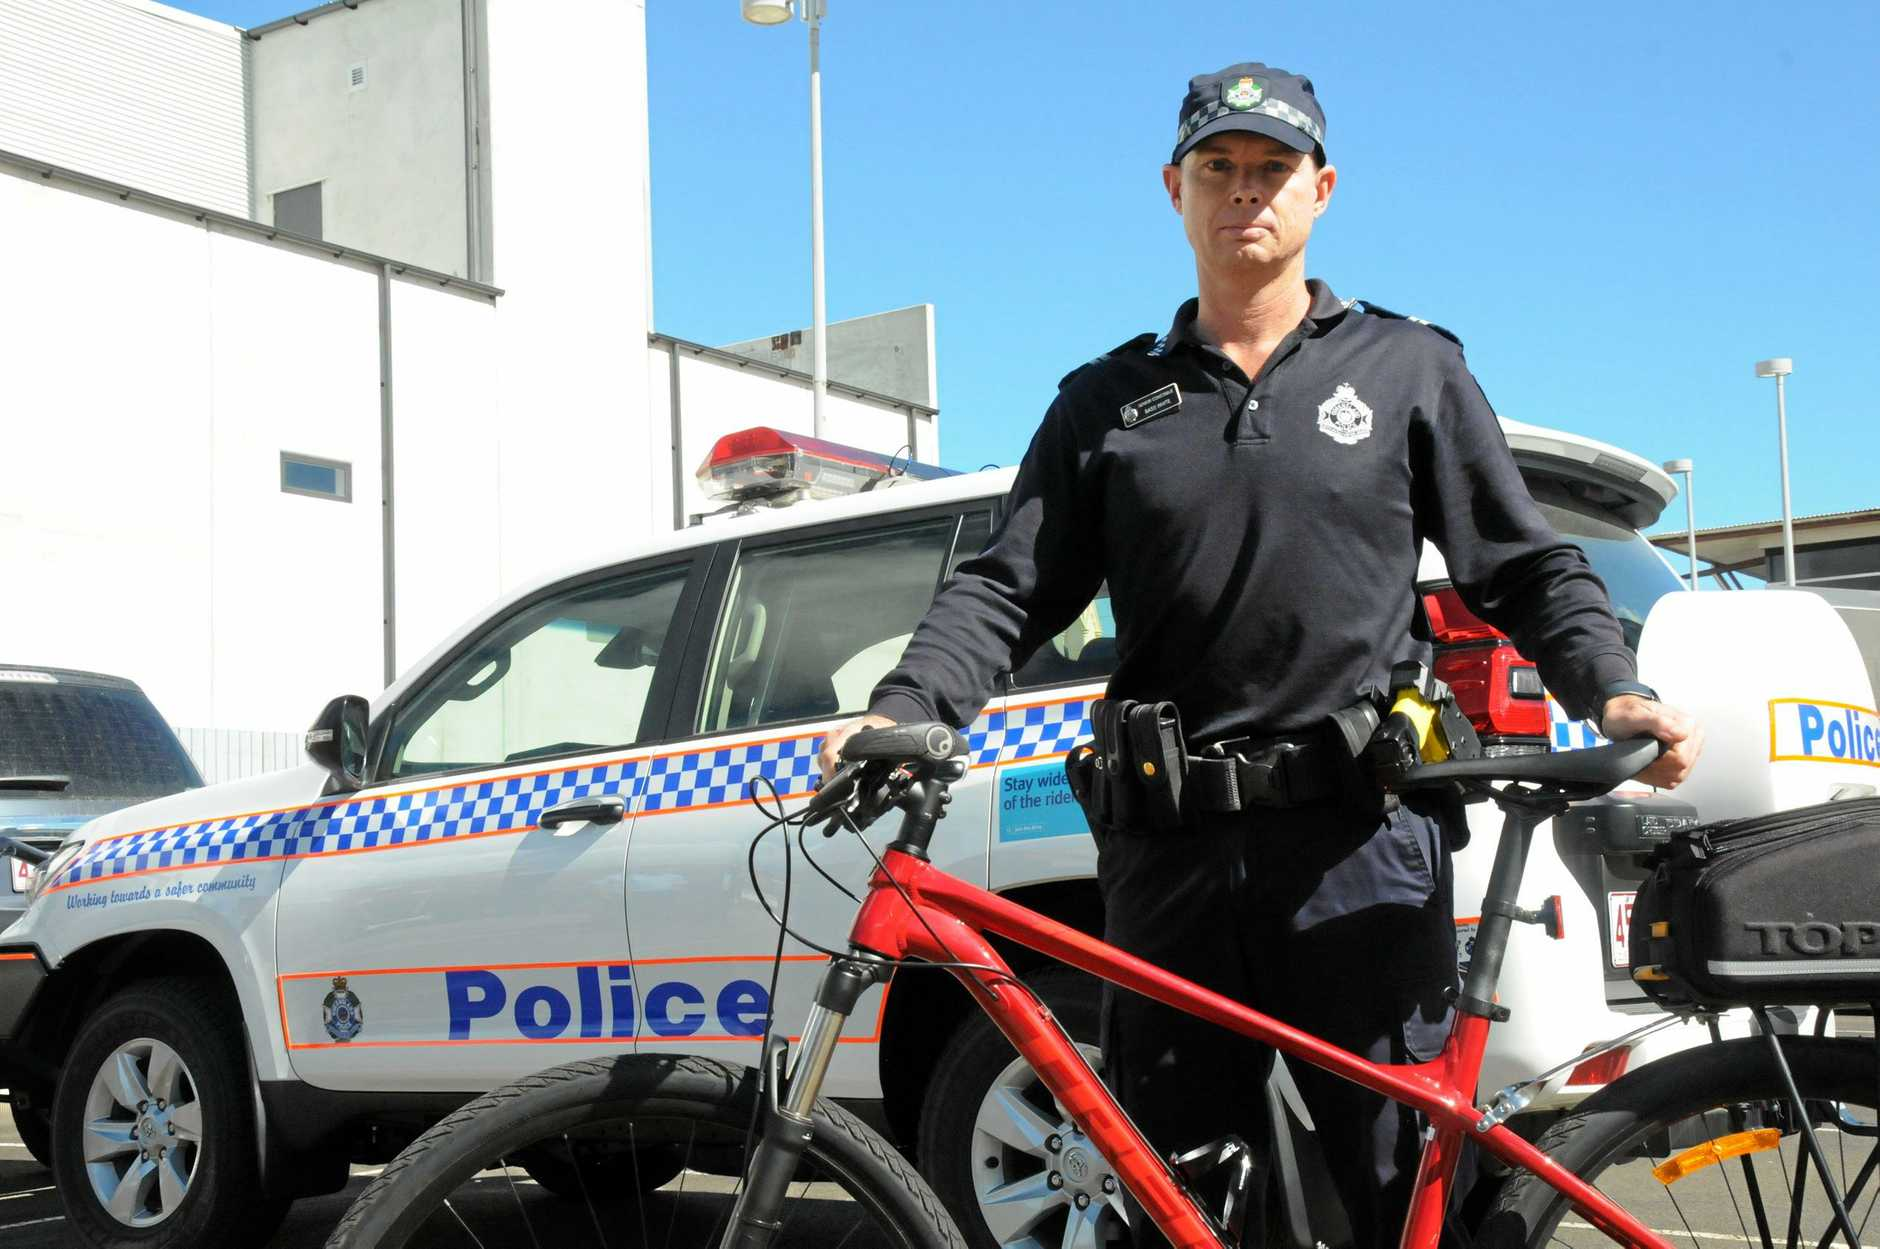 Senior Constable Bass White of Toowoomba Police was on the Bicycle Squad when a routine walk-through of the Gowrie Road Hotel allegedly escalated into a potentially deadly situation.